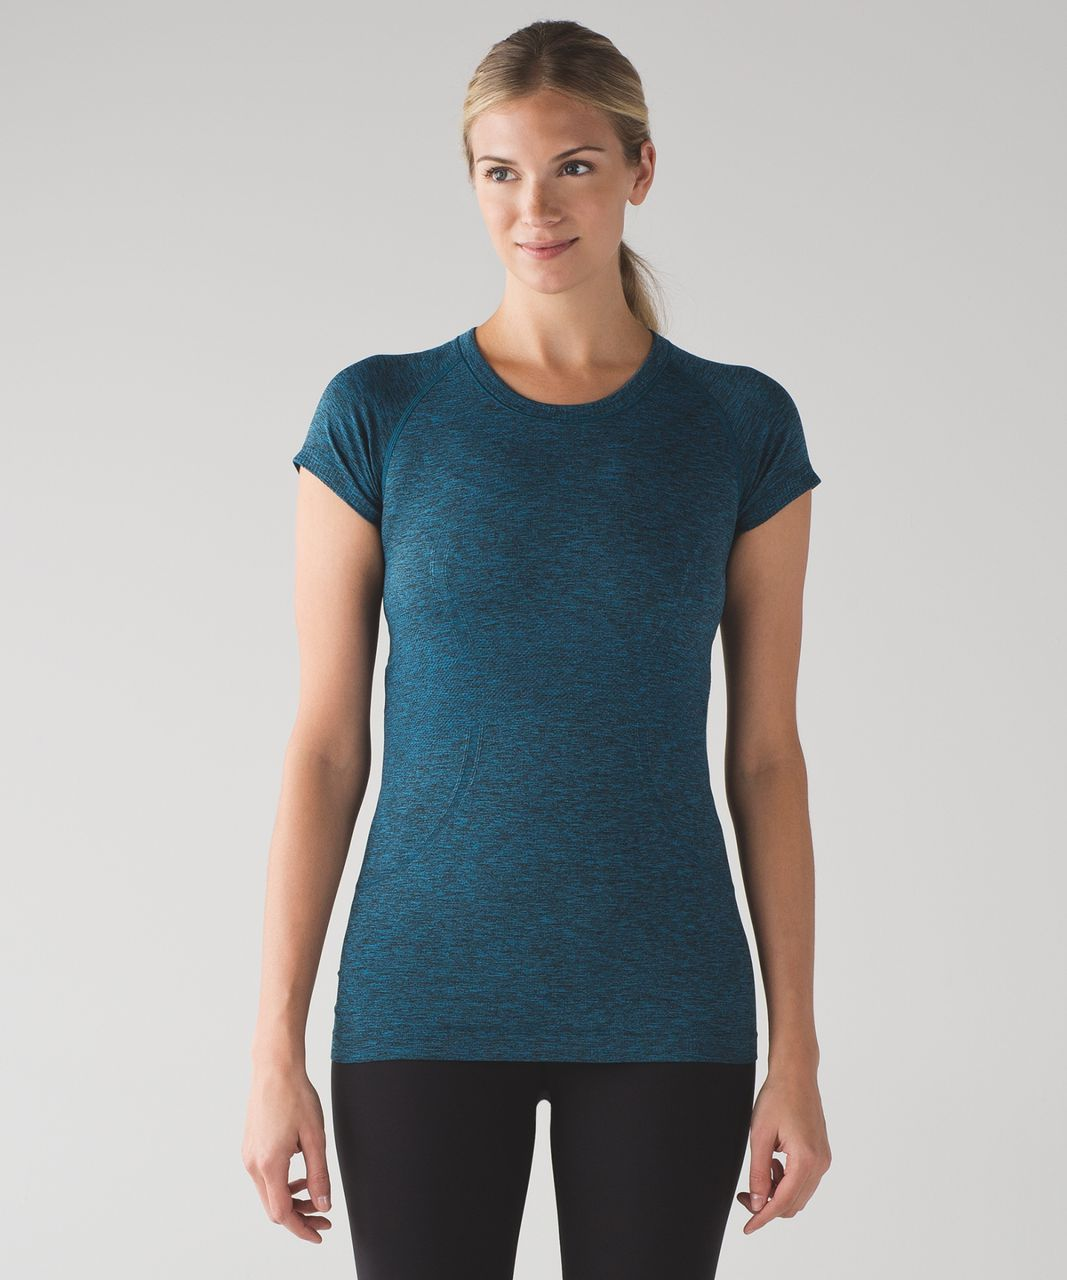 Lululemon Swiftly Tech Short Sleeve Crew - Capri / Black